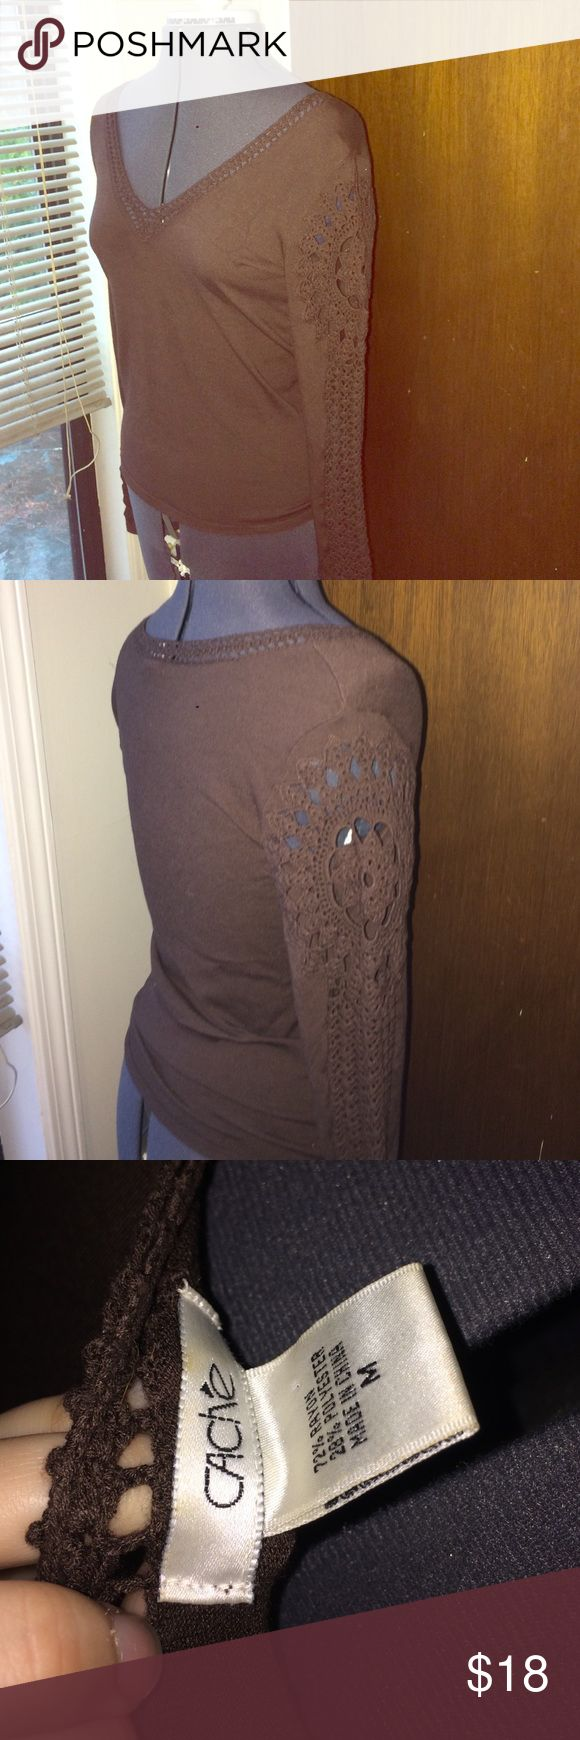 Cache crochet tee Really cool long sleeve tee with crochet details. No stains or holes. Cache Tops Tees - Long Sleeve